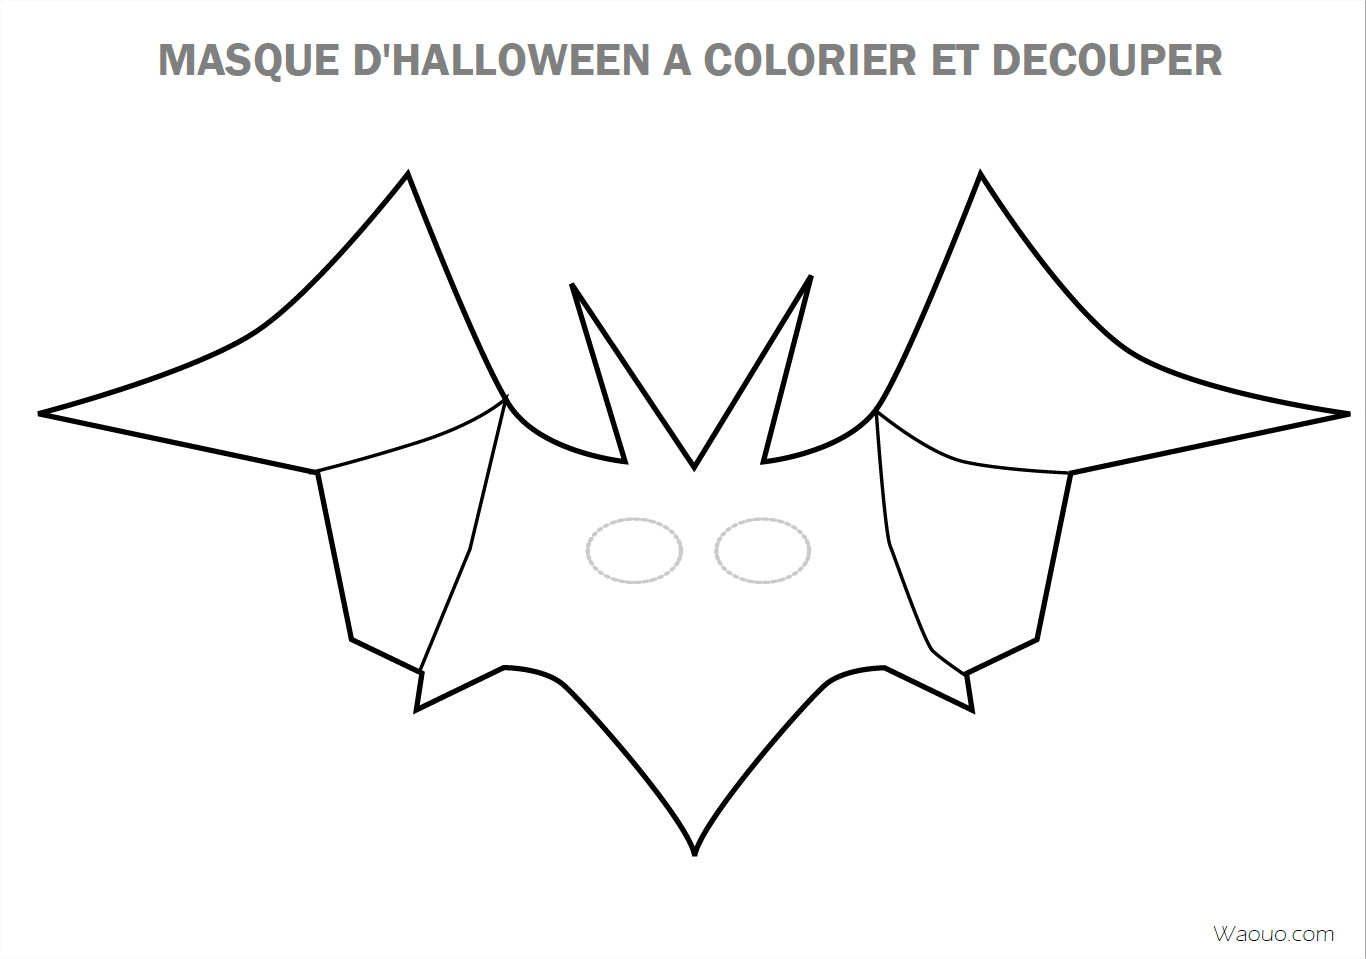 Coloriage Masque Halloween